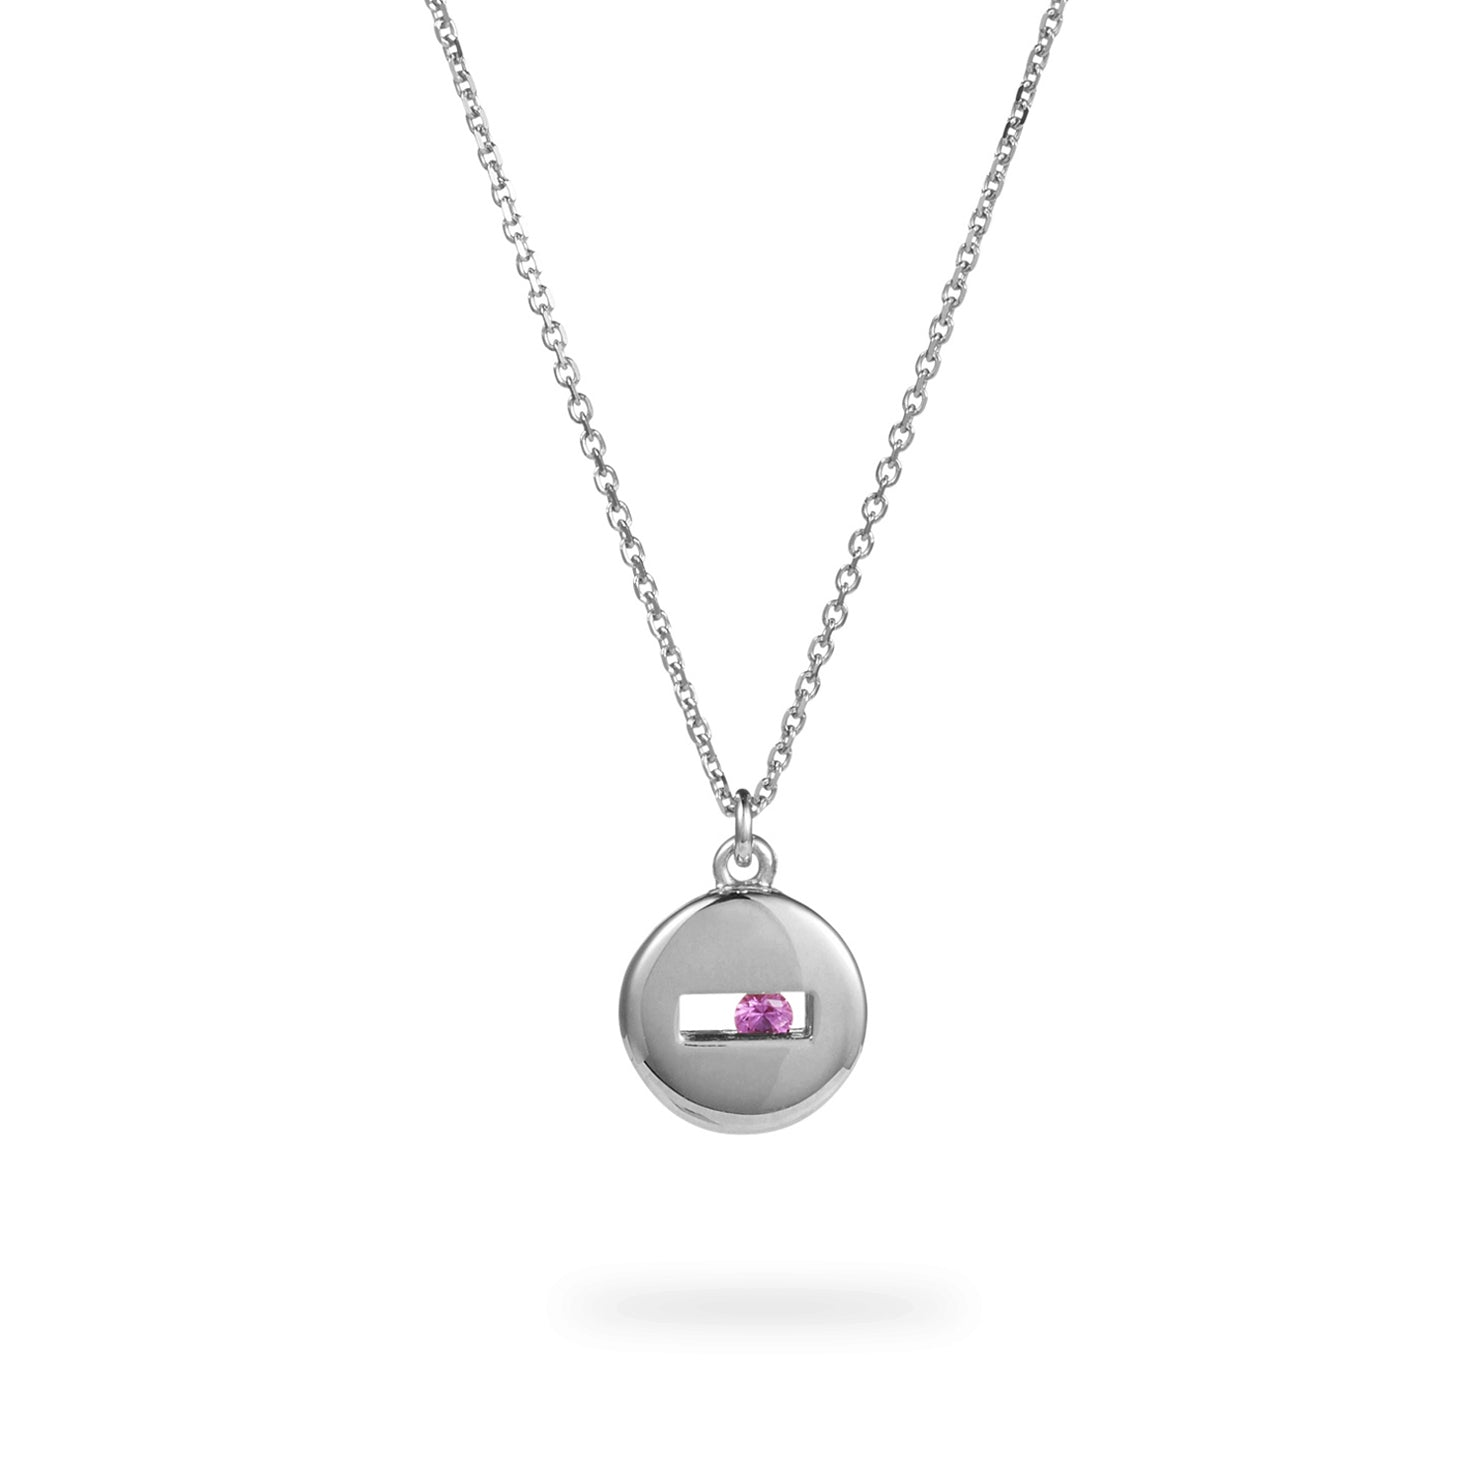 Luke Rose Jewellery silver rolling rock necklace